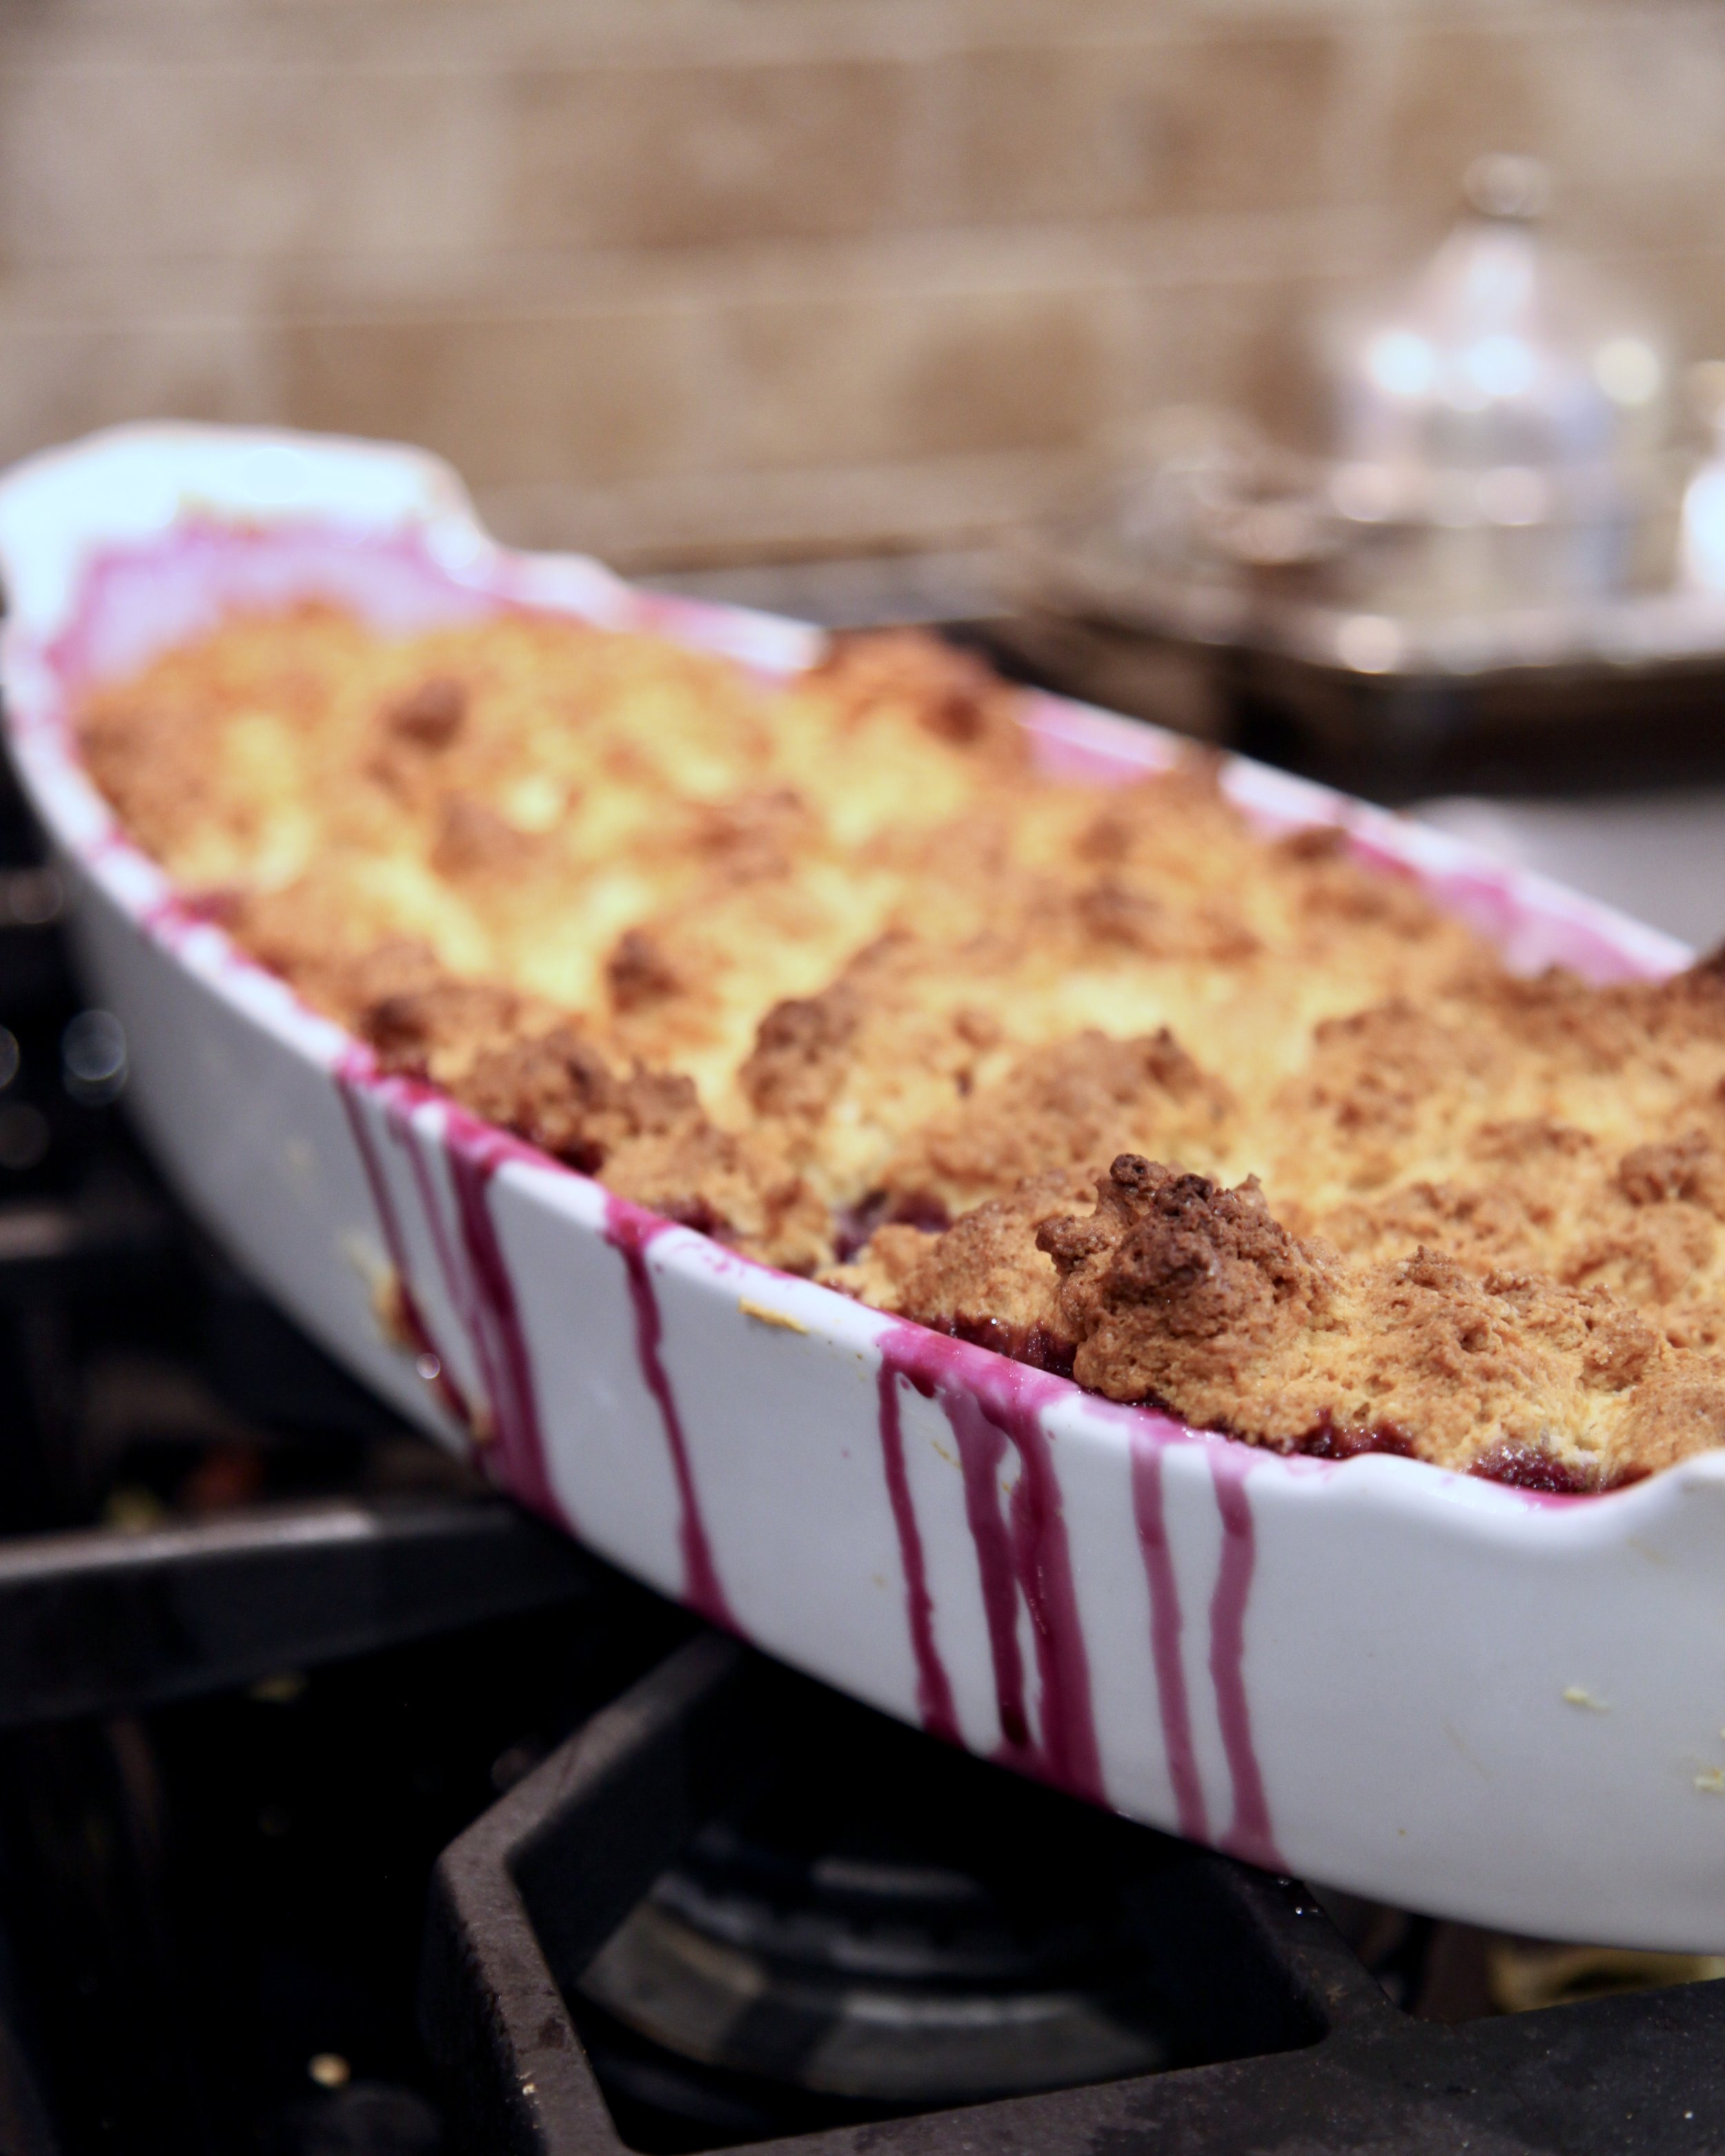 The cobbler is baked in a 19th century French baking dish.  Warning: oozing might occur.